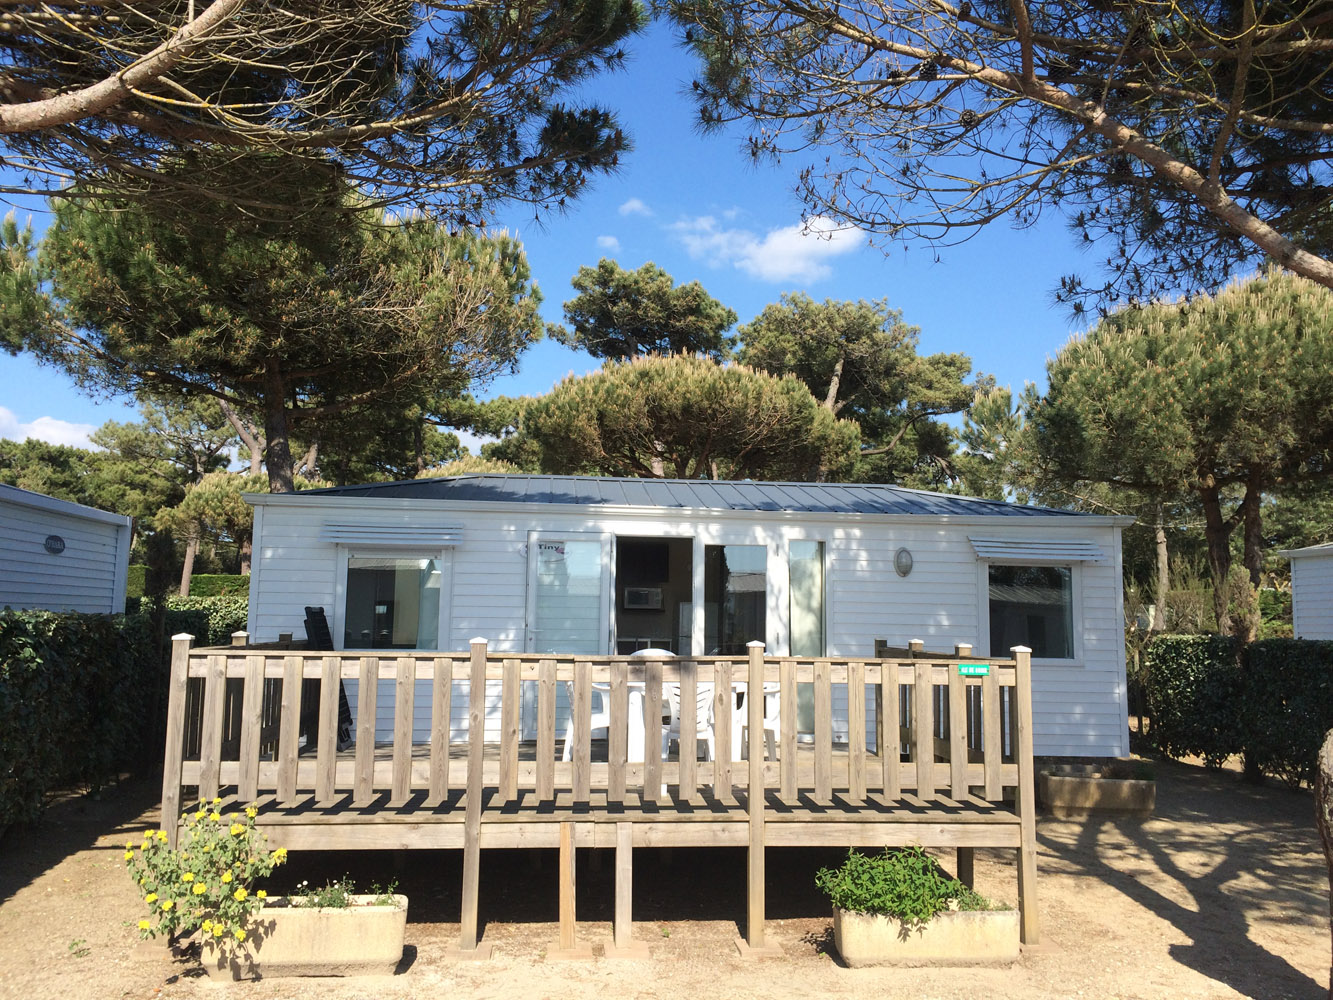 Mobile home 2 bedrooms 2 bathrooms - beachfront campsite in Charente-Maritime